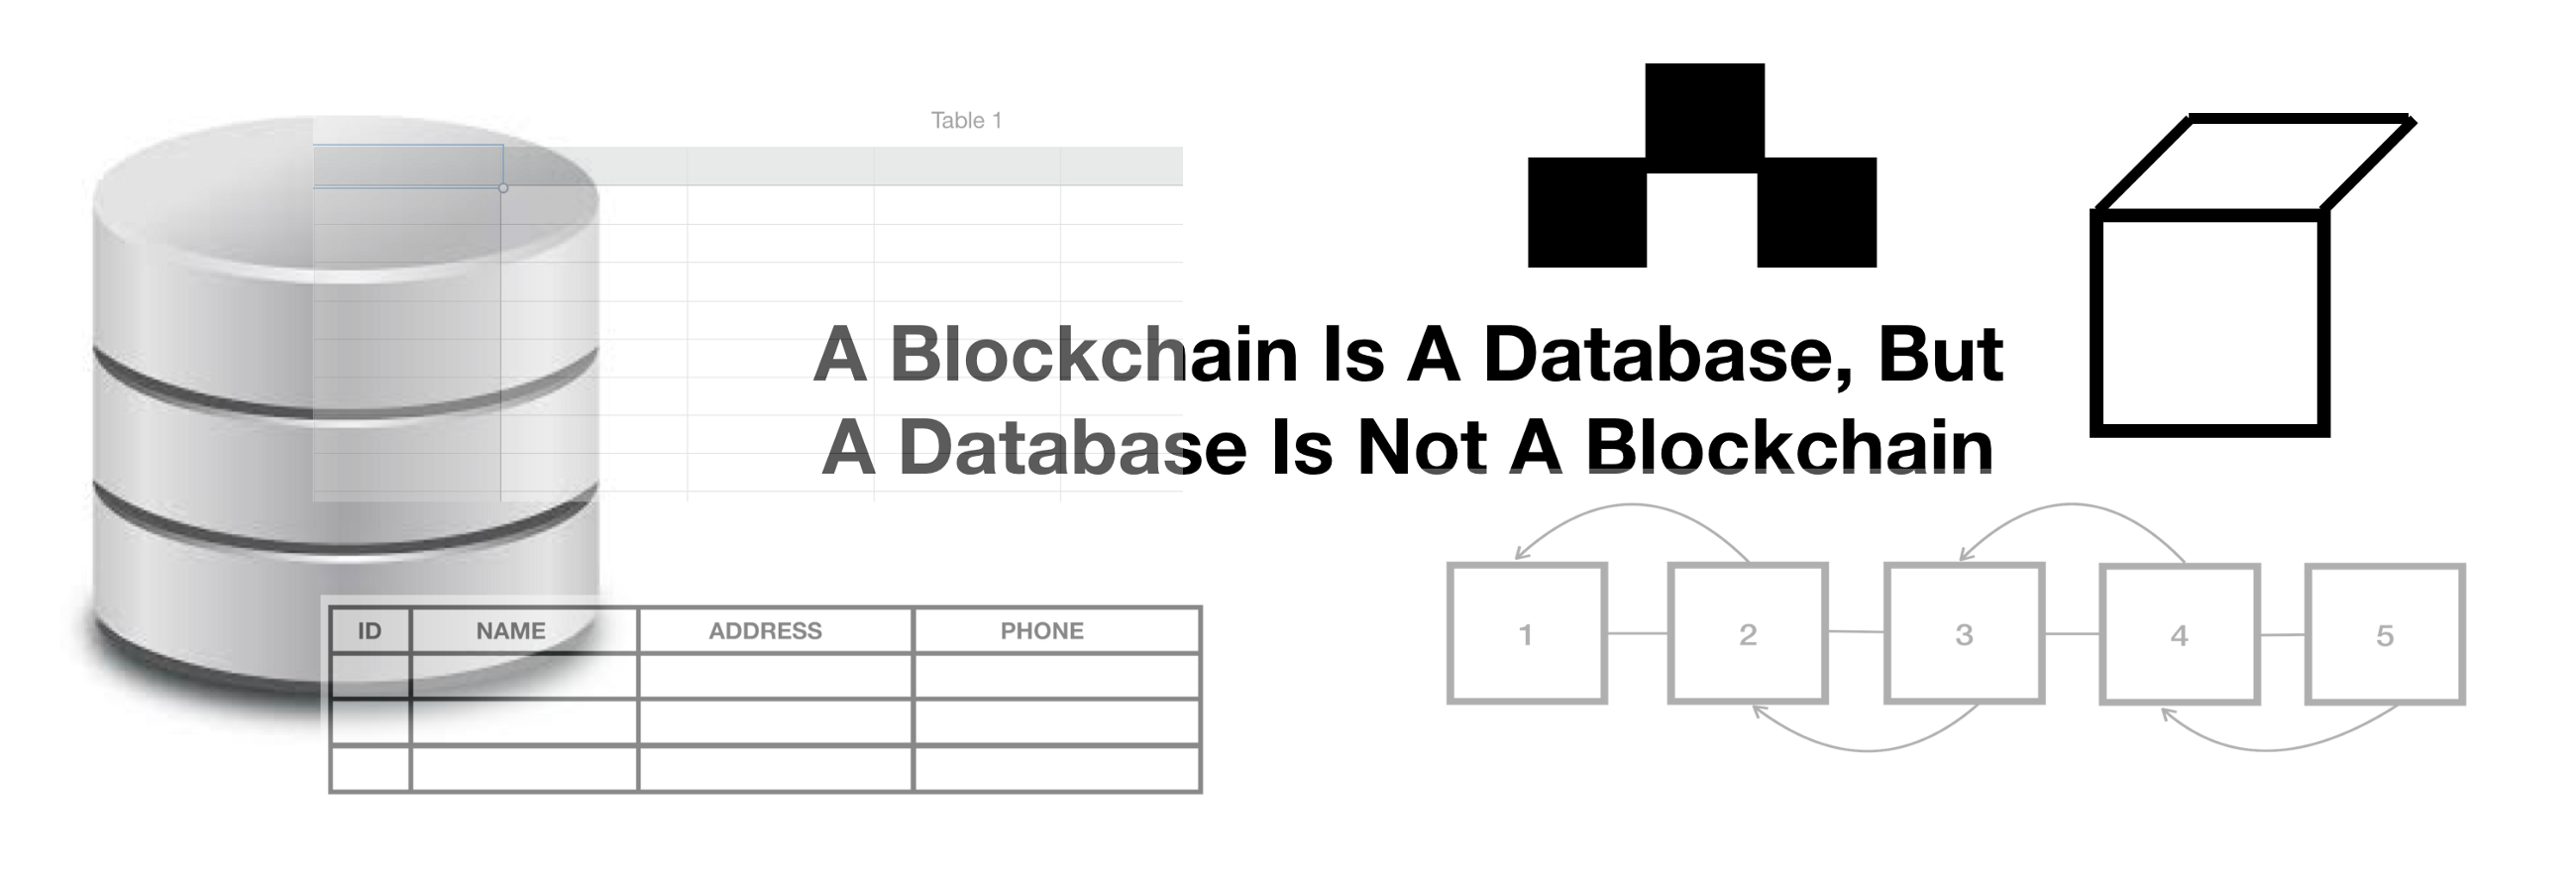 Databases and Blockchains, The Difference Is In Their